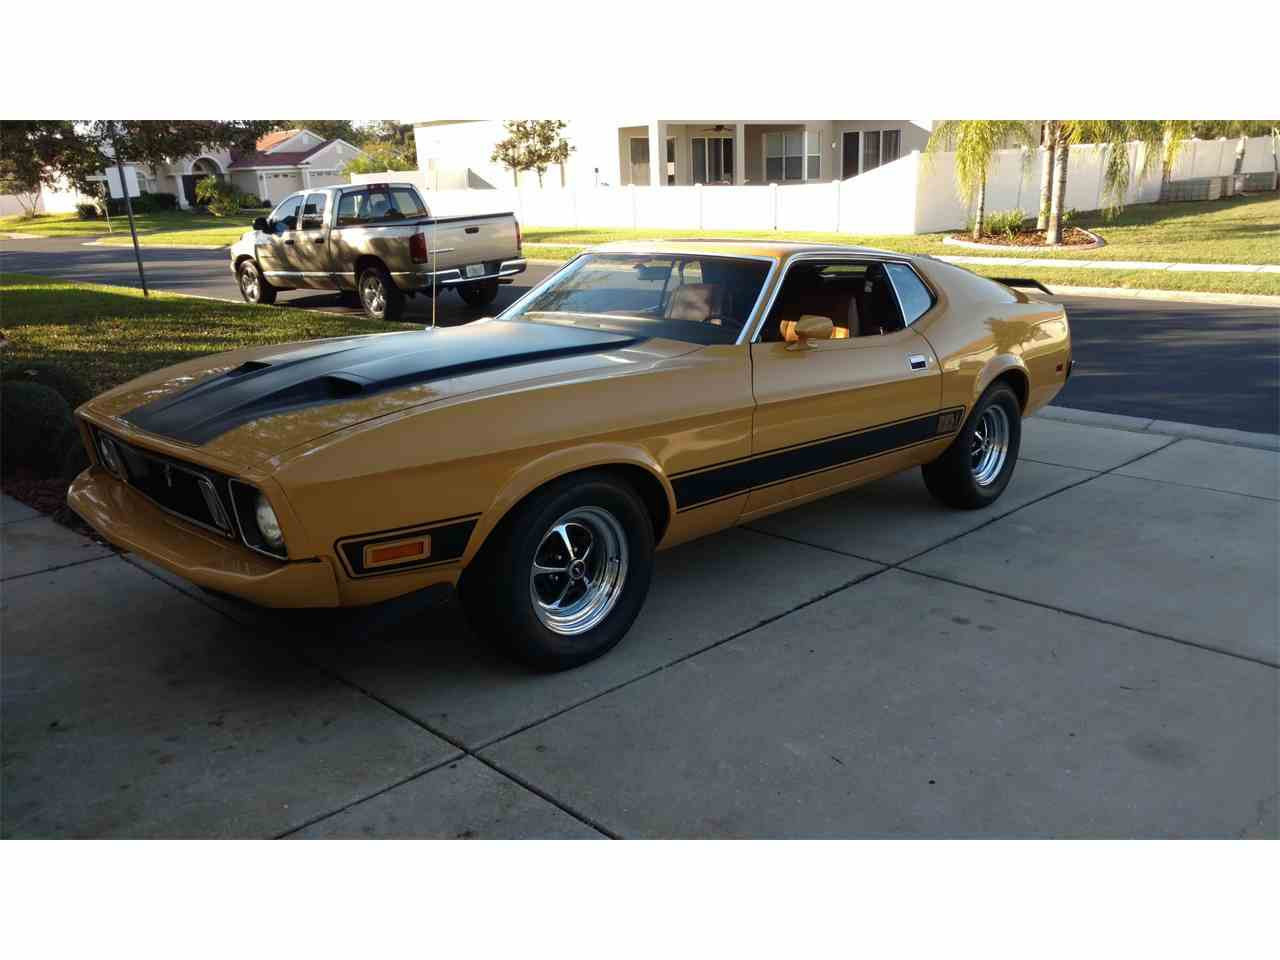 Picture Of 73 Mustang Mach 1